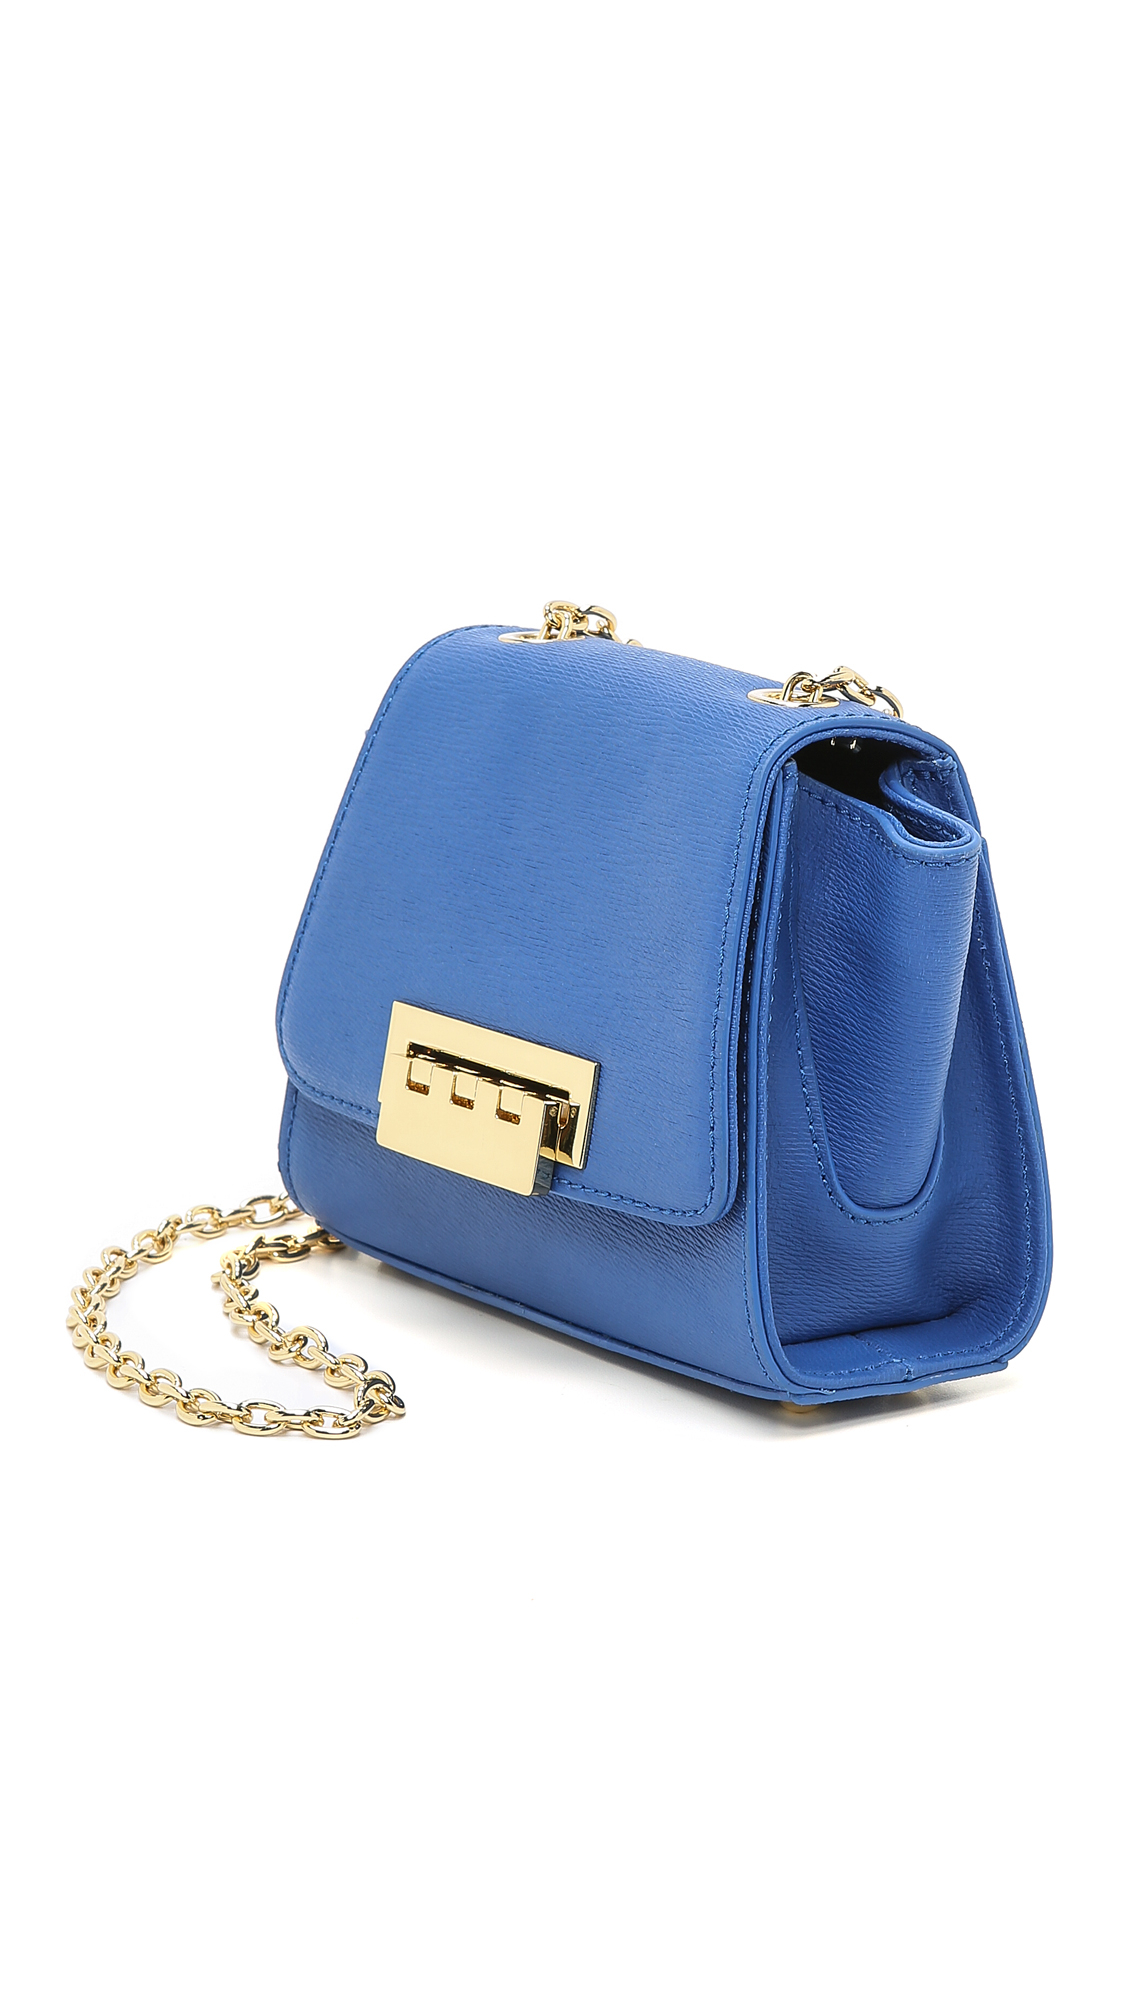 Eartha mini chain backpack - Blue Zac Posen Buy Cheap Reliable Browse For Sale 2018 Newest Online IDEWZnl